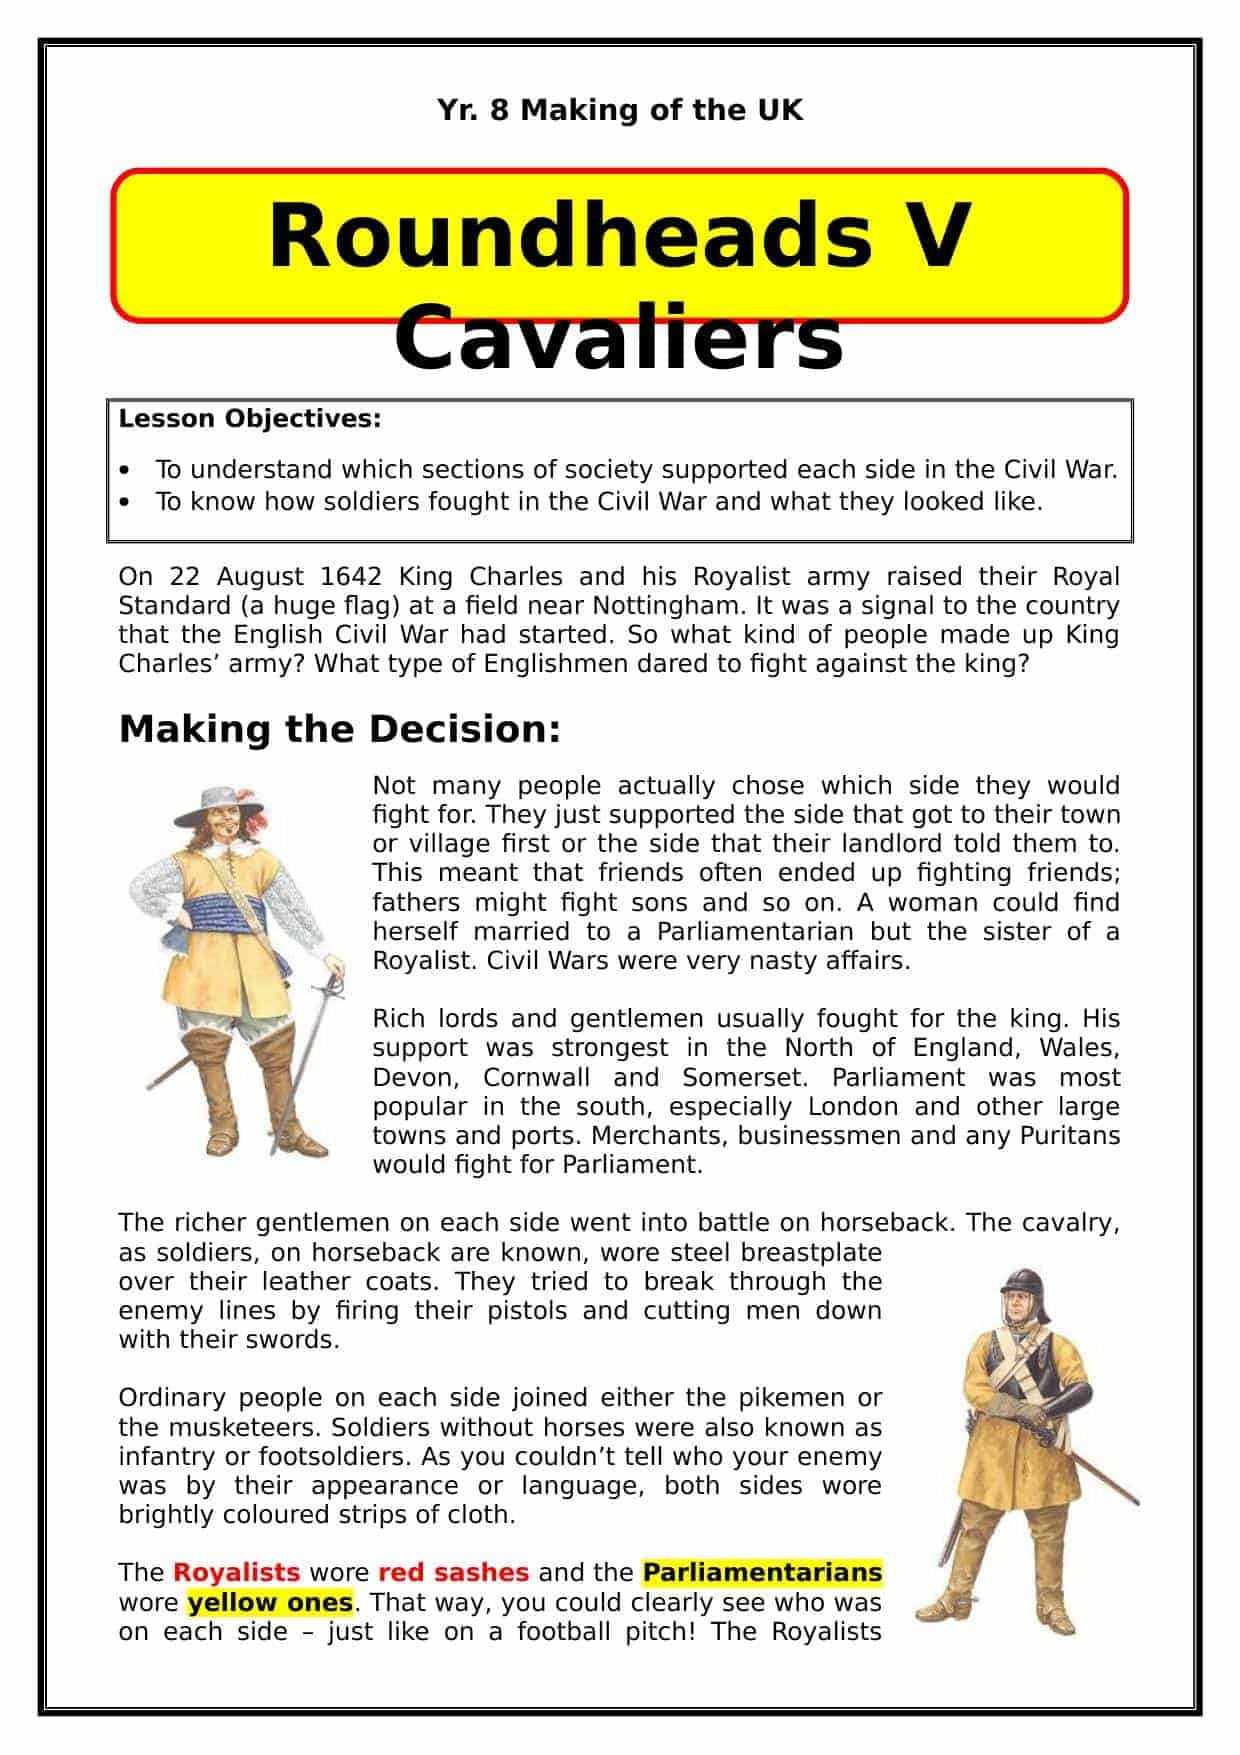 Roundheads V Cavaliers